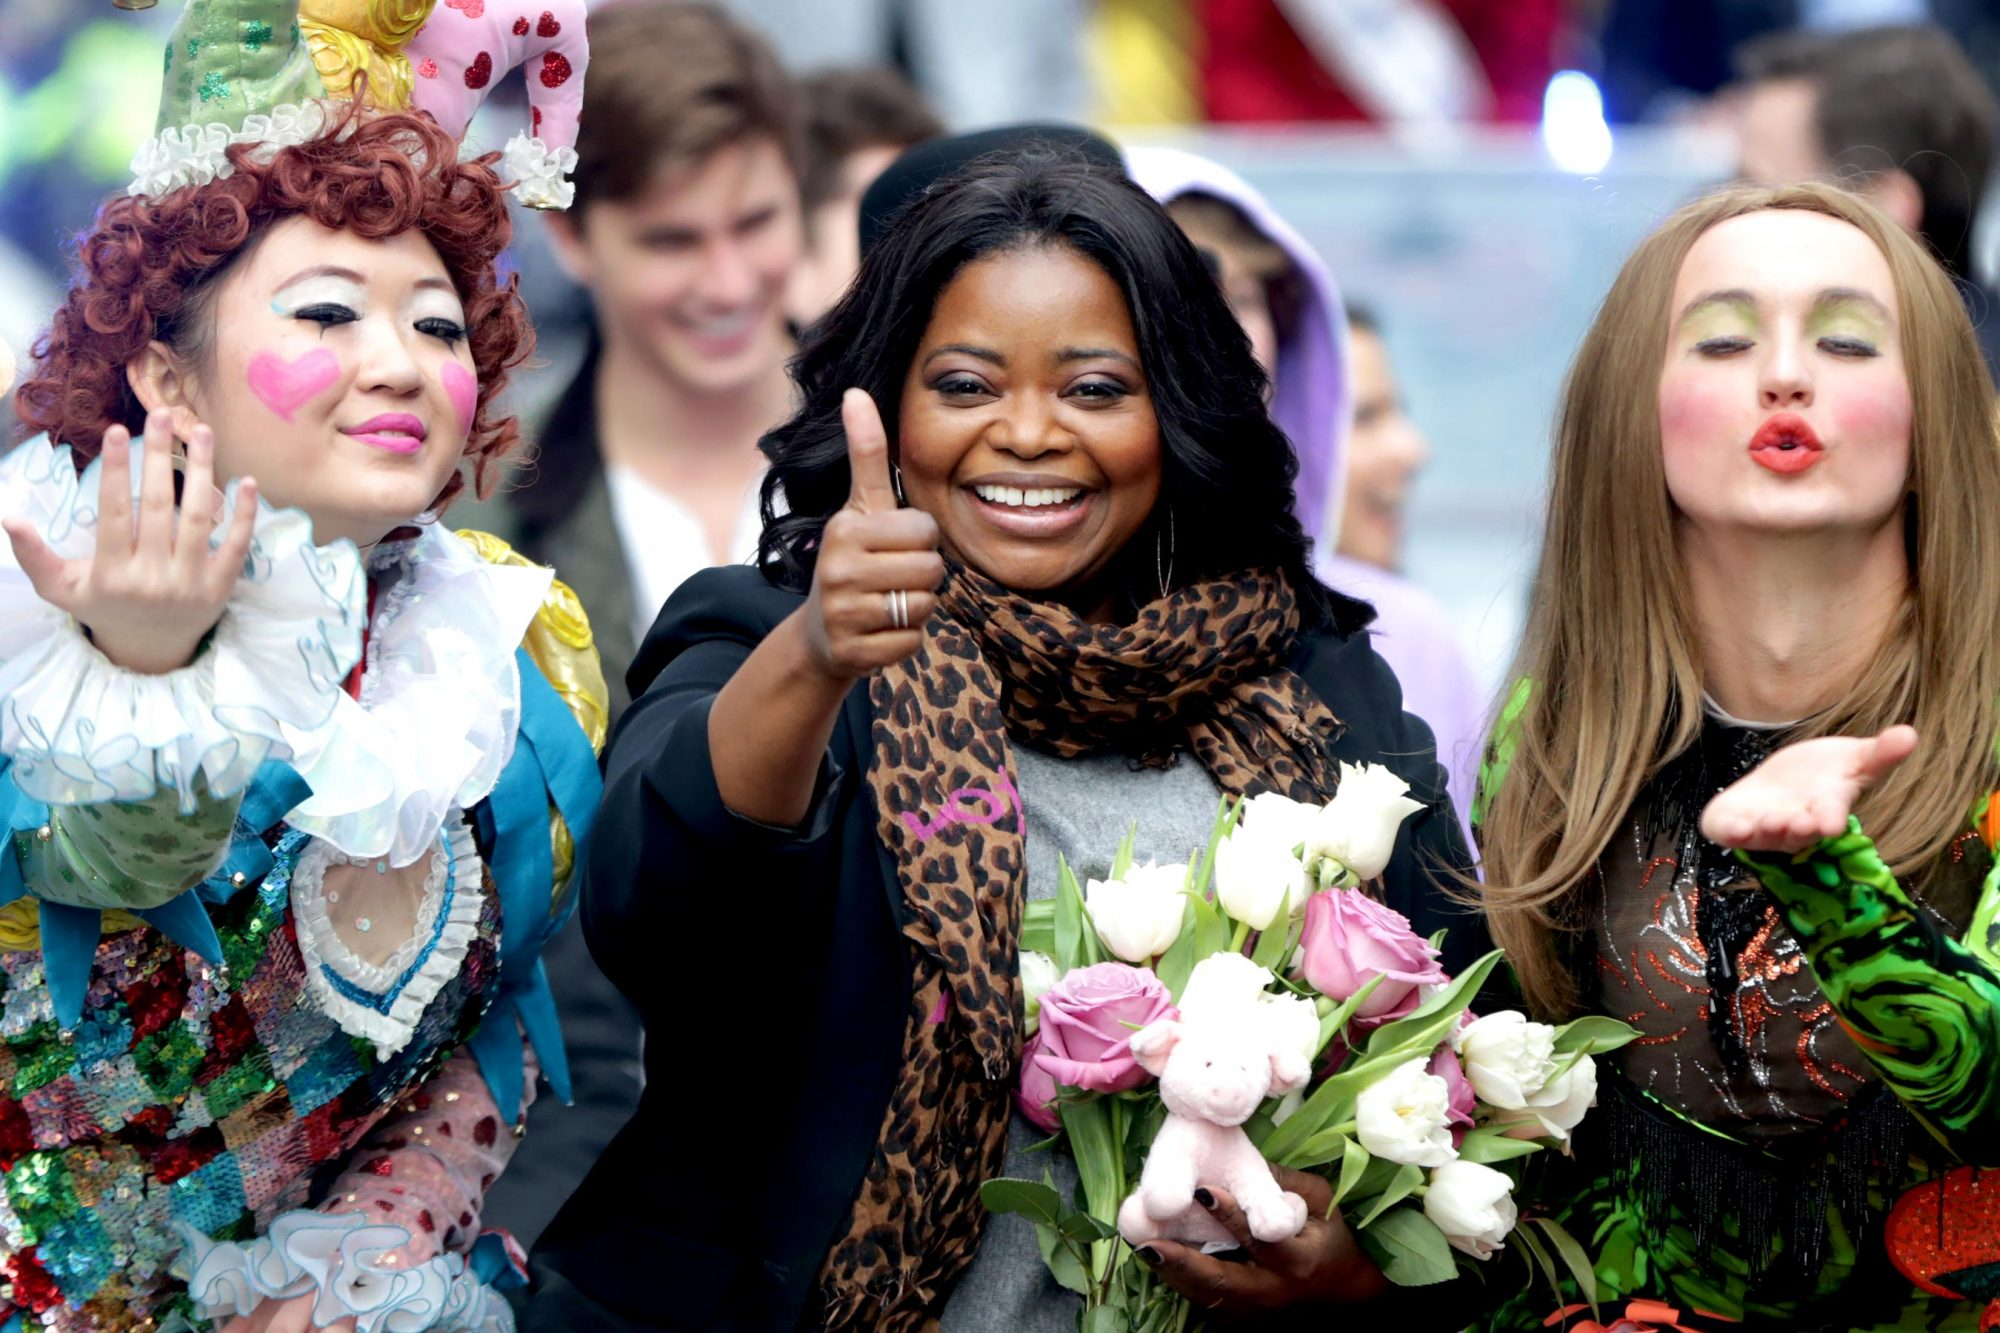 Hasty Pudding Woman Of The Year 2017: Octavia Spencer